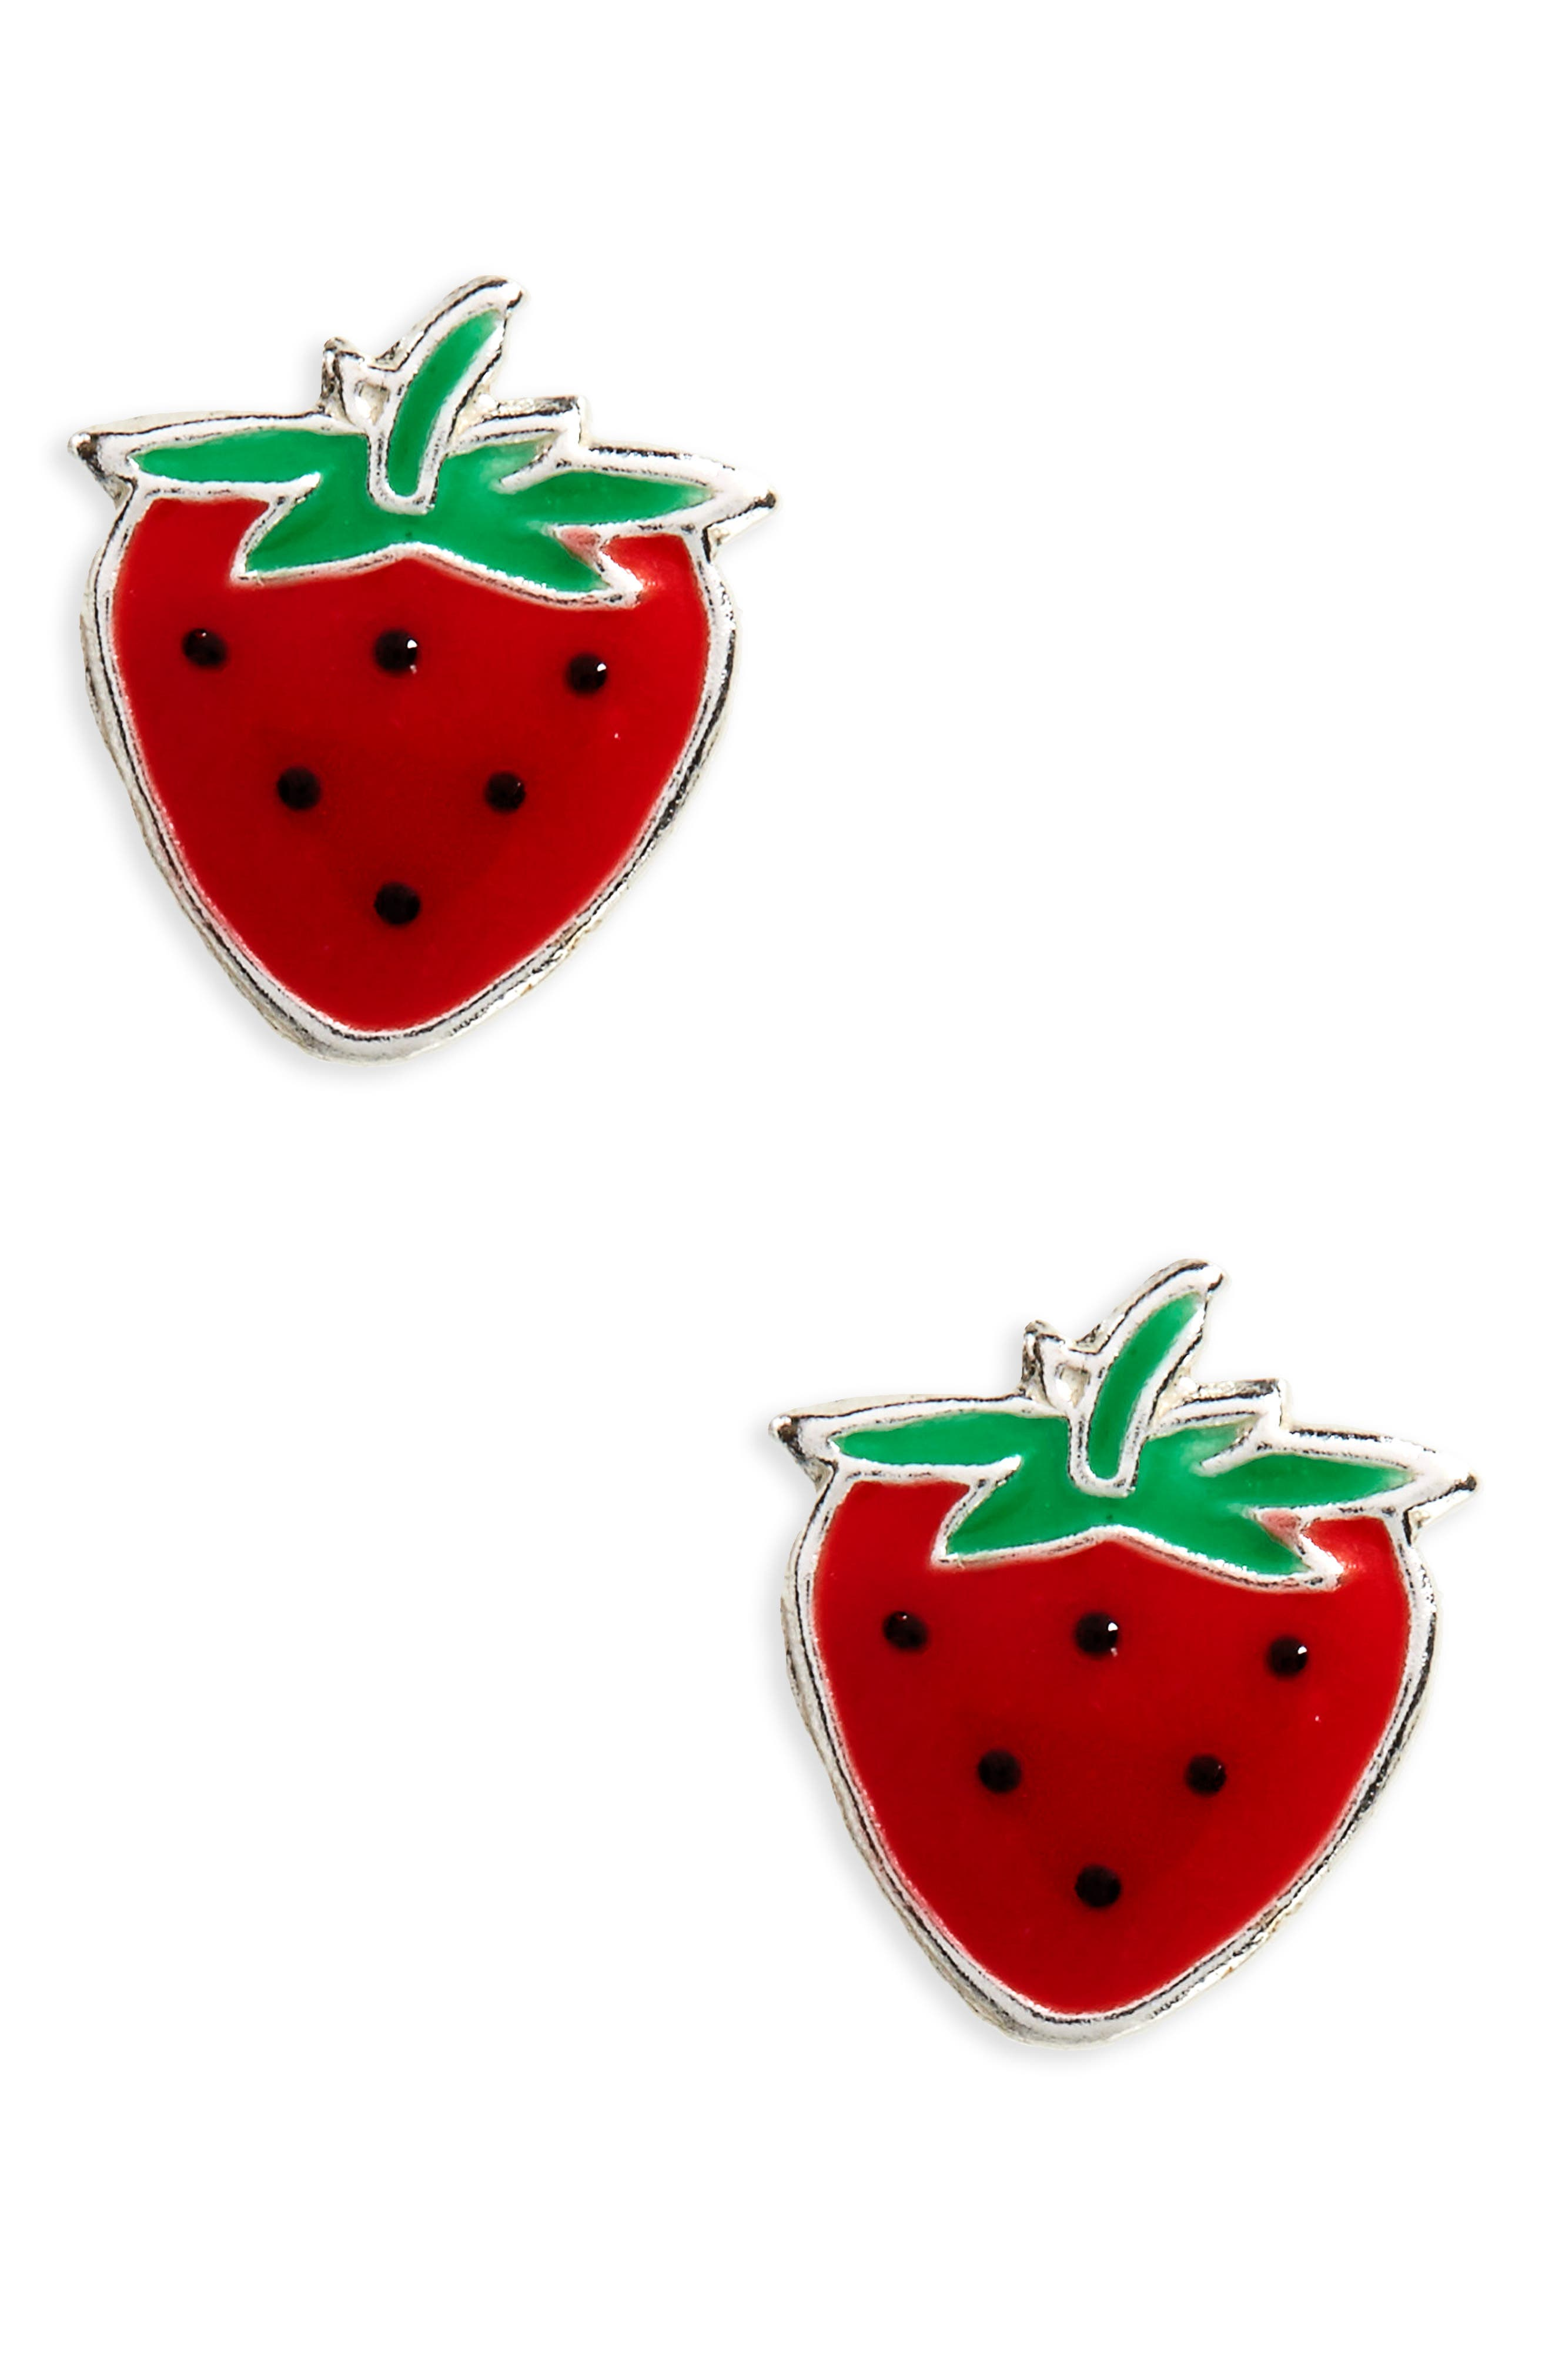 Strawberry Sterling Silver Stud Earrings,                             Main thumbnail 1, color,                             Red/ Green